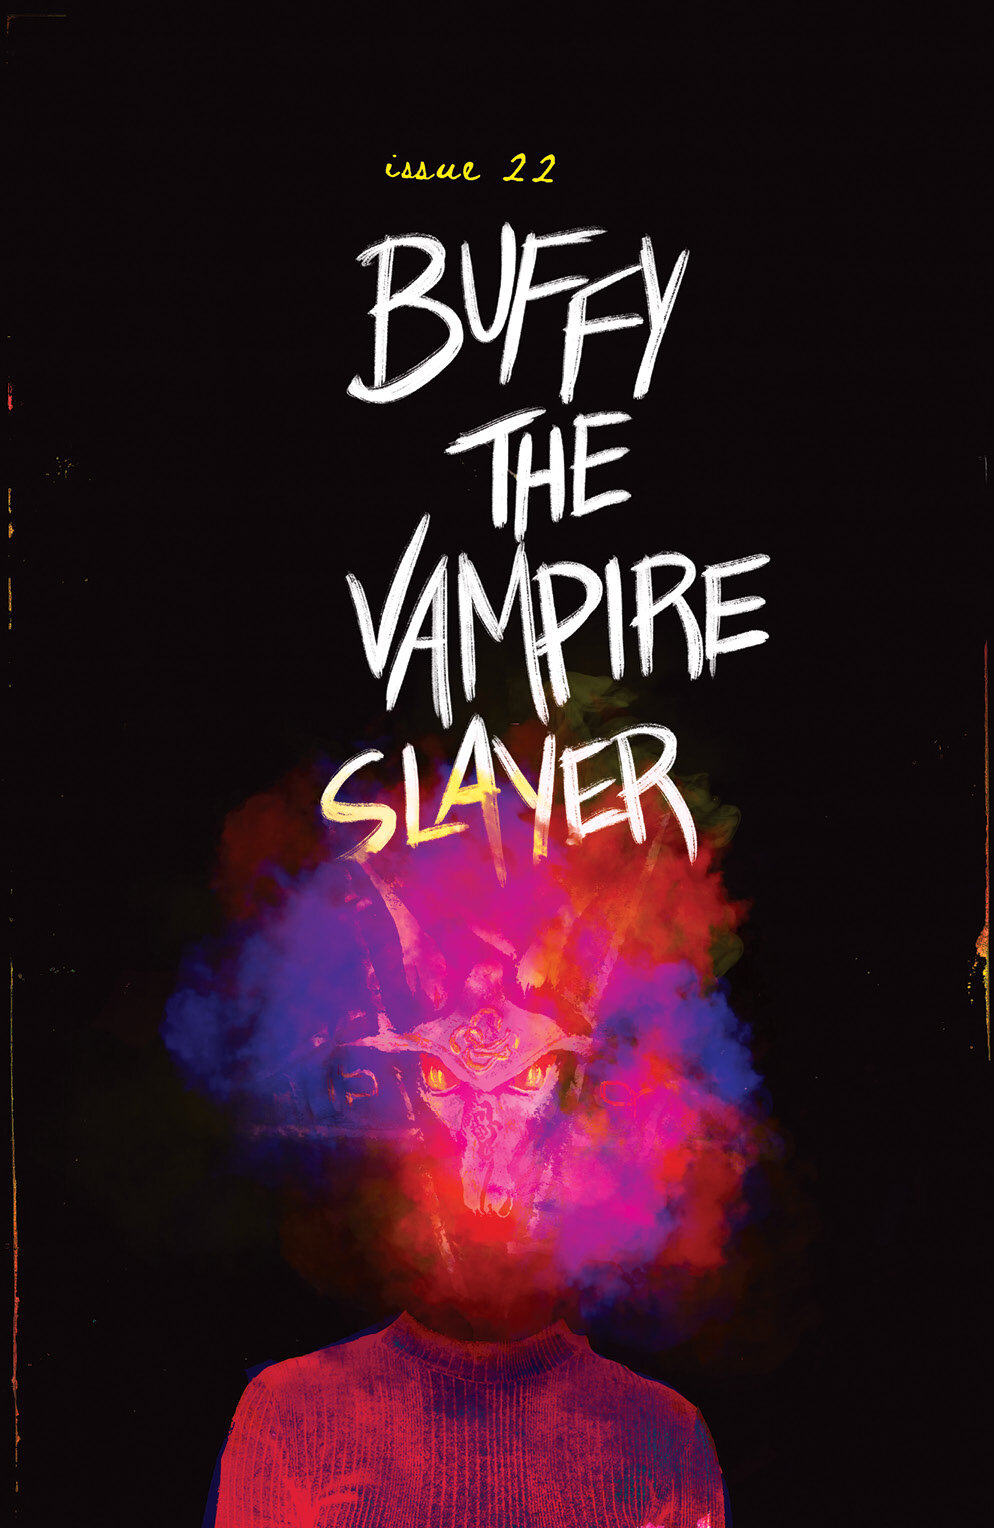 Buffy_022_Cover_C_RingofFire.jpg